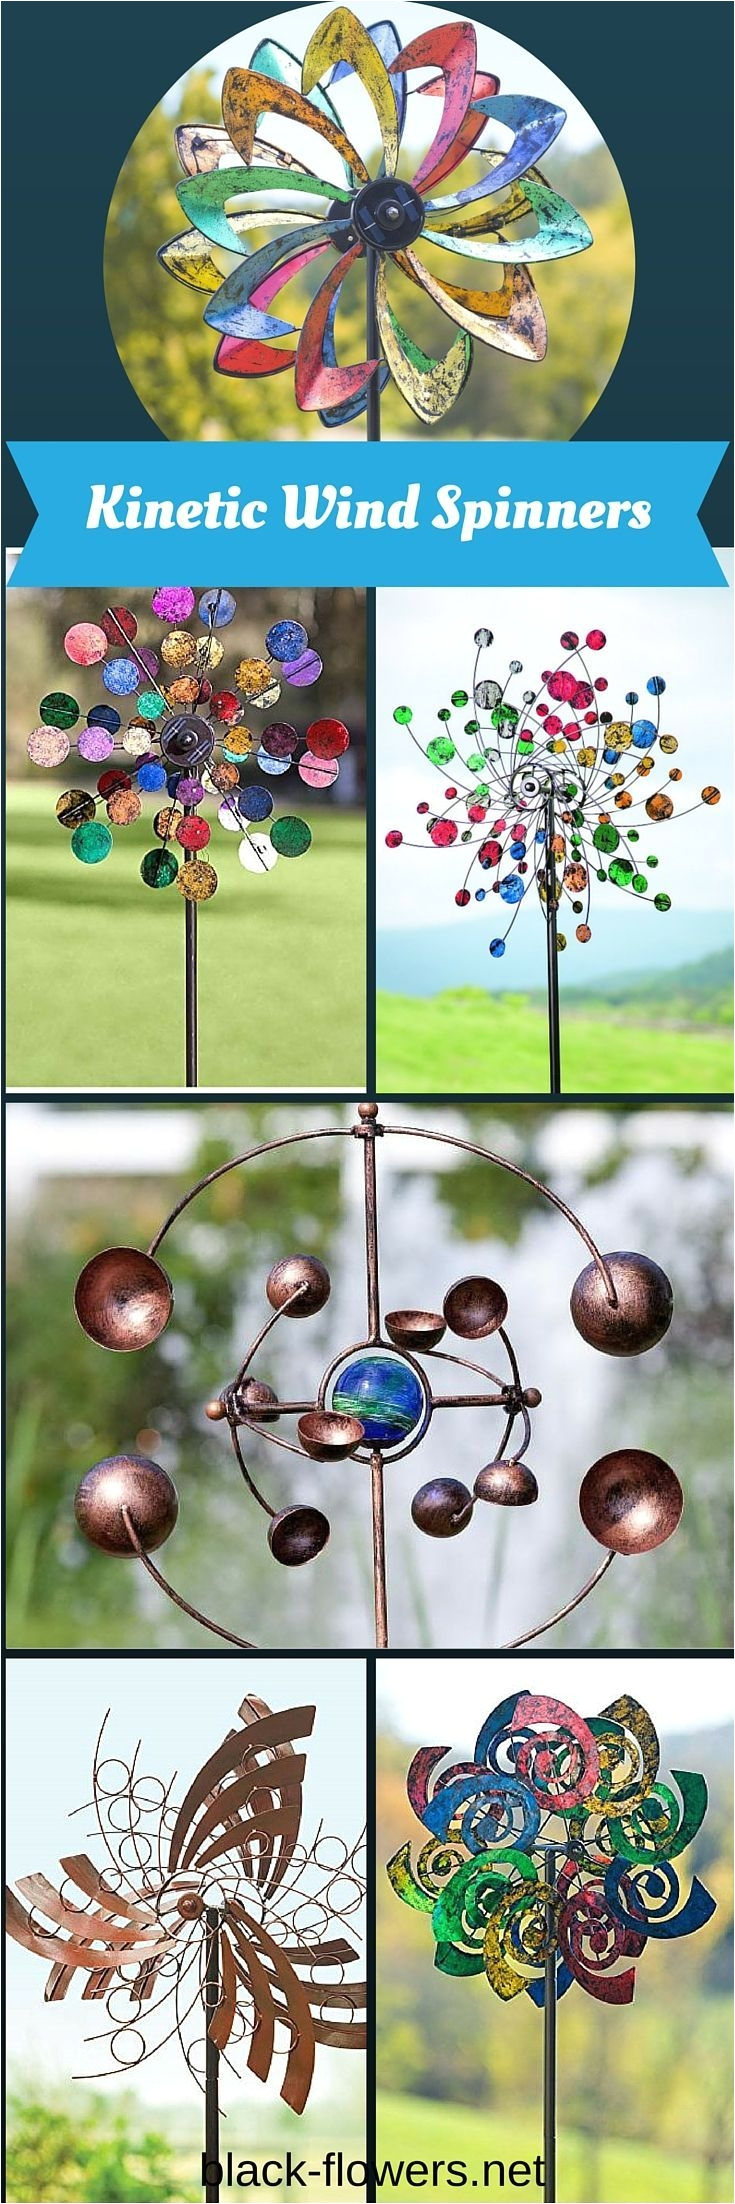 designed to add movement to garden decor kinetic wind sculptures are beautiful pieces of art that incorporate the clever use of sculpted pieces which spin